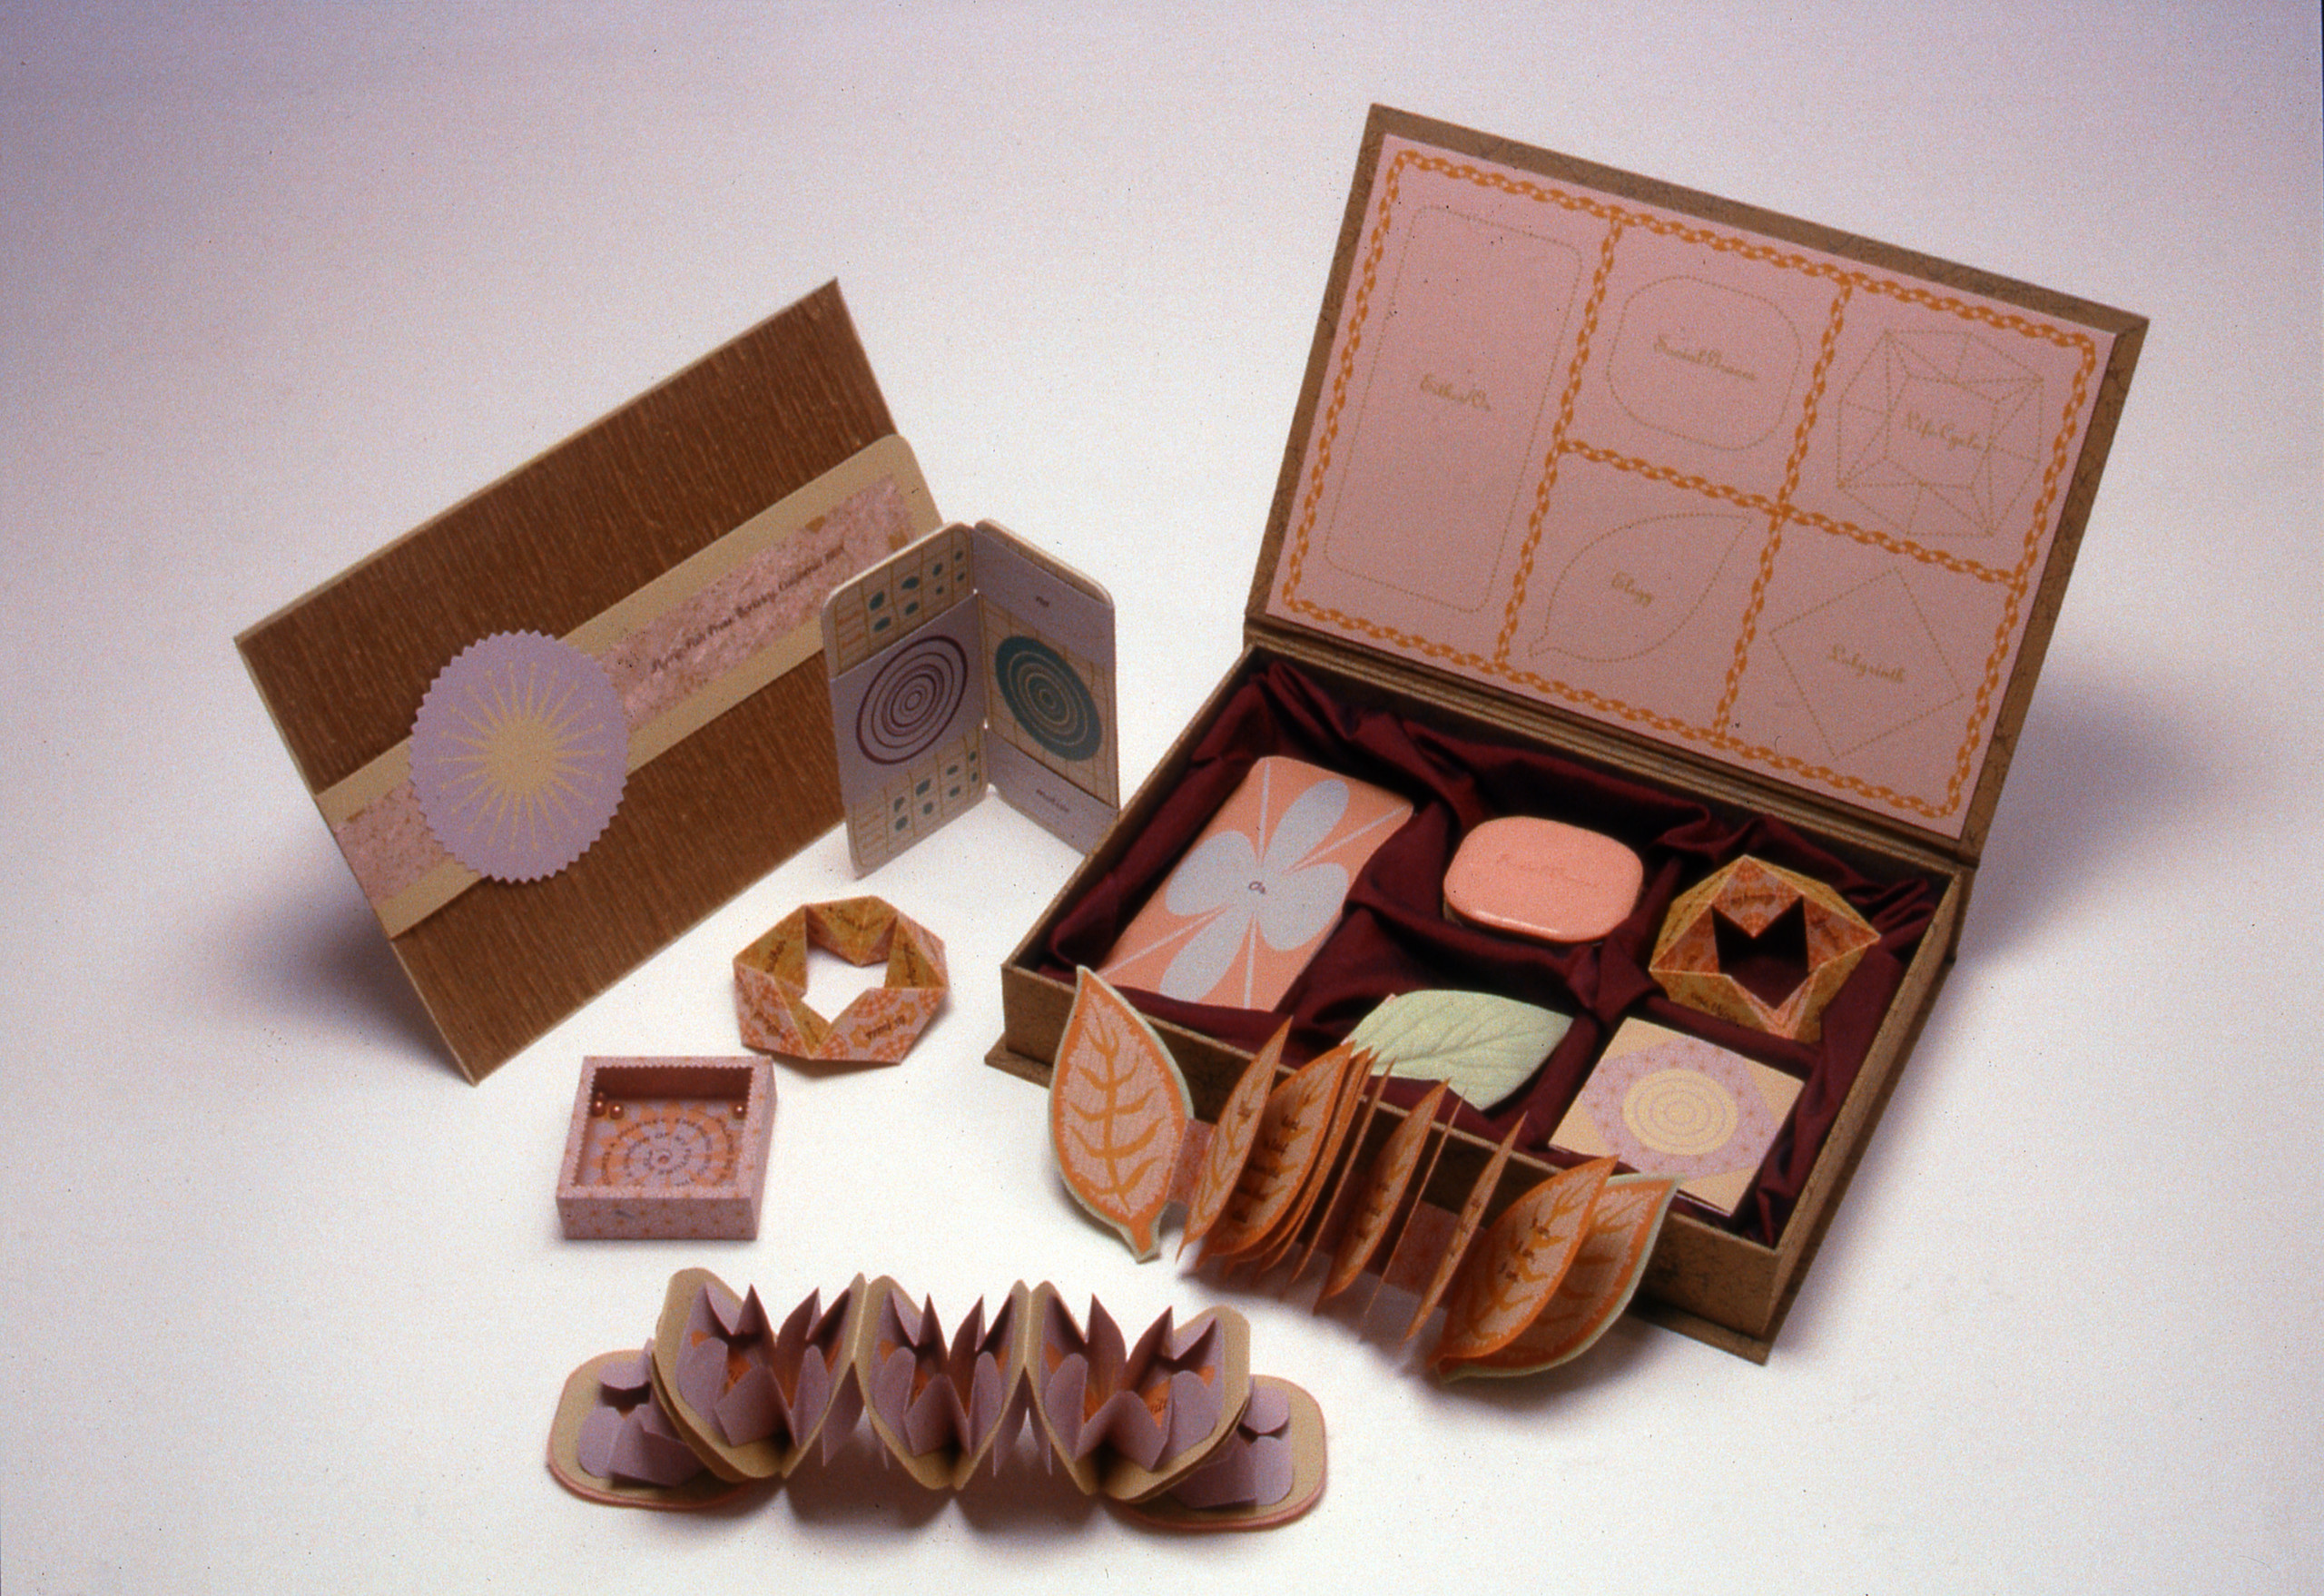 Multiple colorful objects sit spread out against a neutral background, including a rectangular box filled with more small objects, two small books spread open, a small box resembling a game, and other folded paper objects.